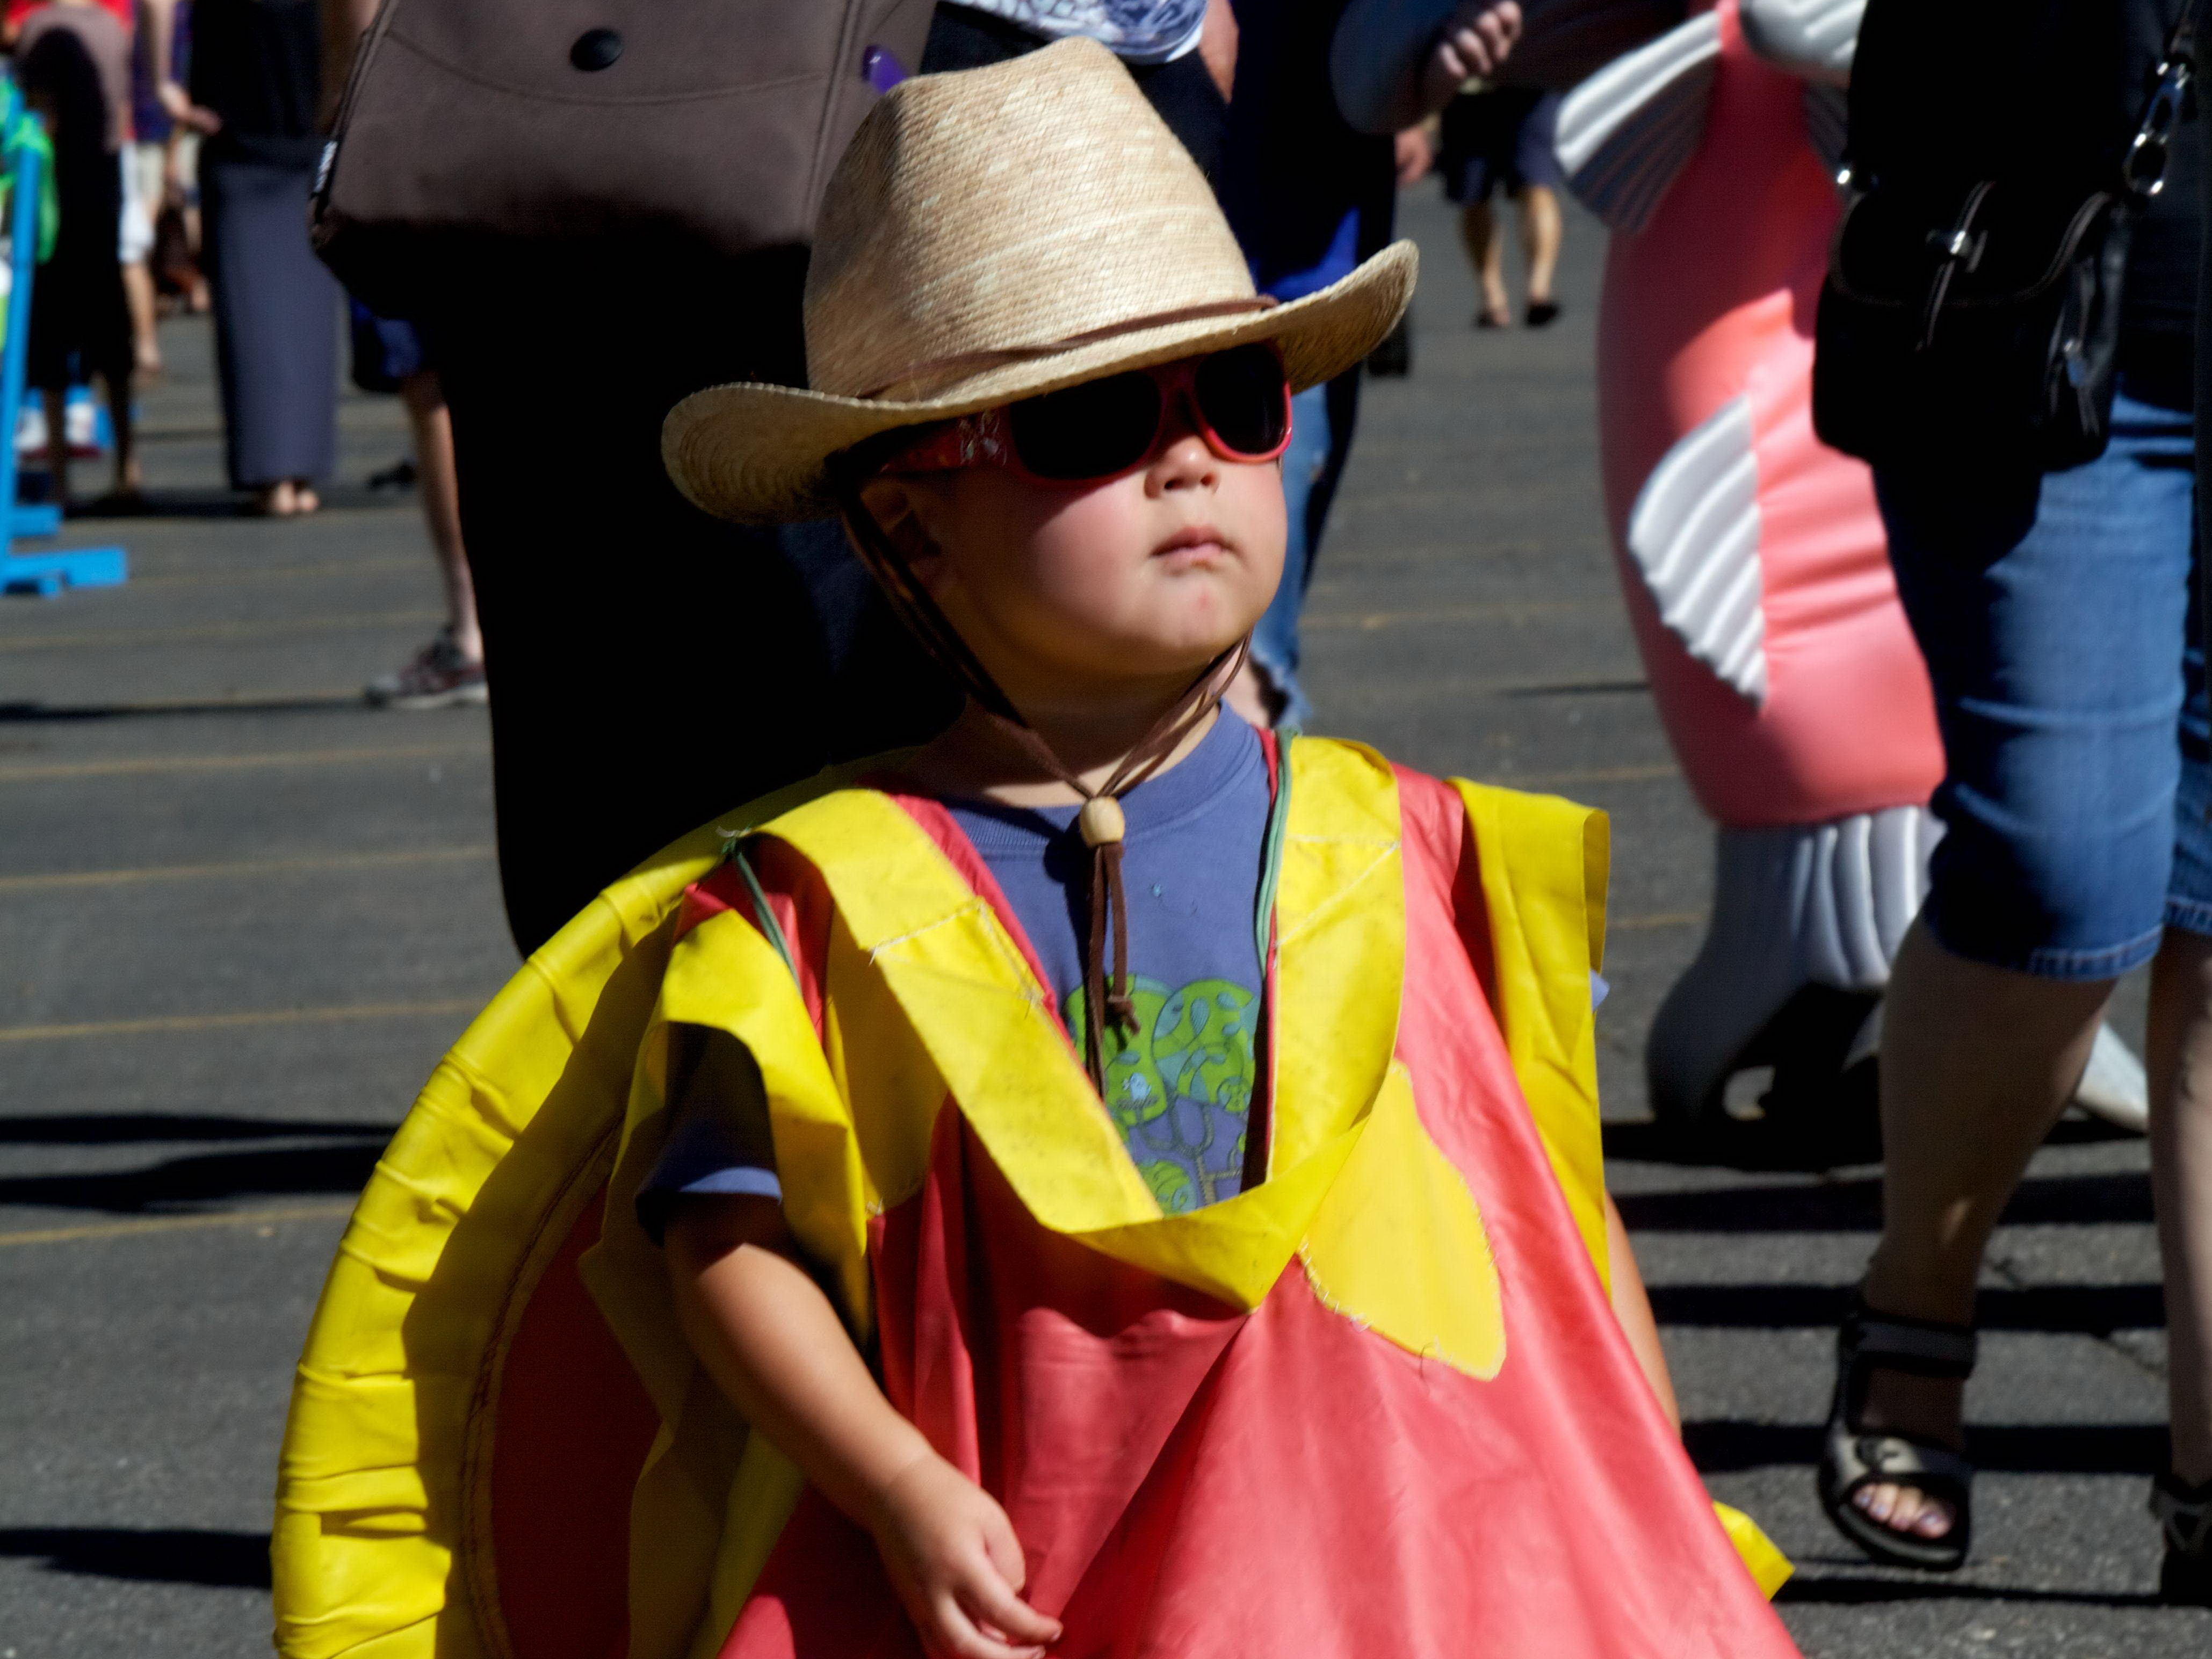 Free photograph; young, boy, costume, parade, child, funny